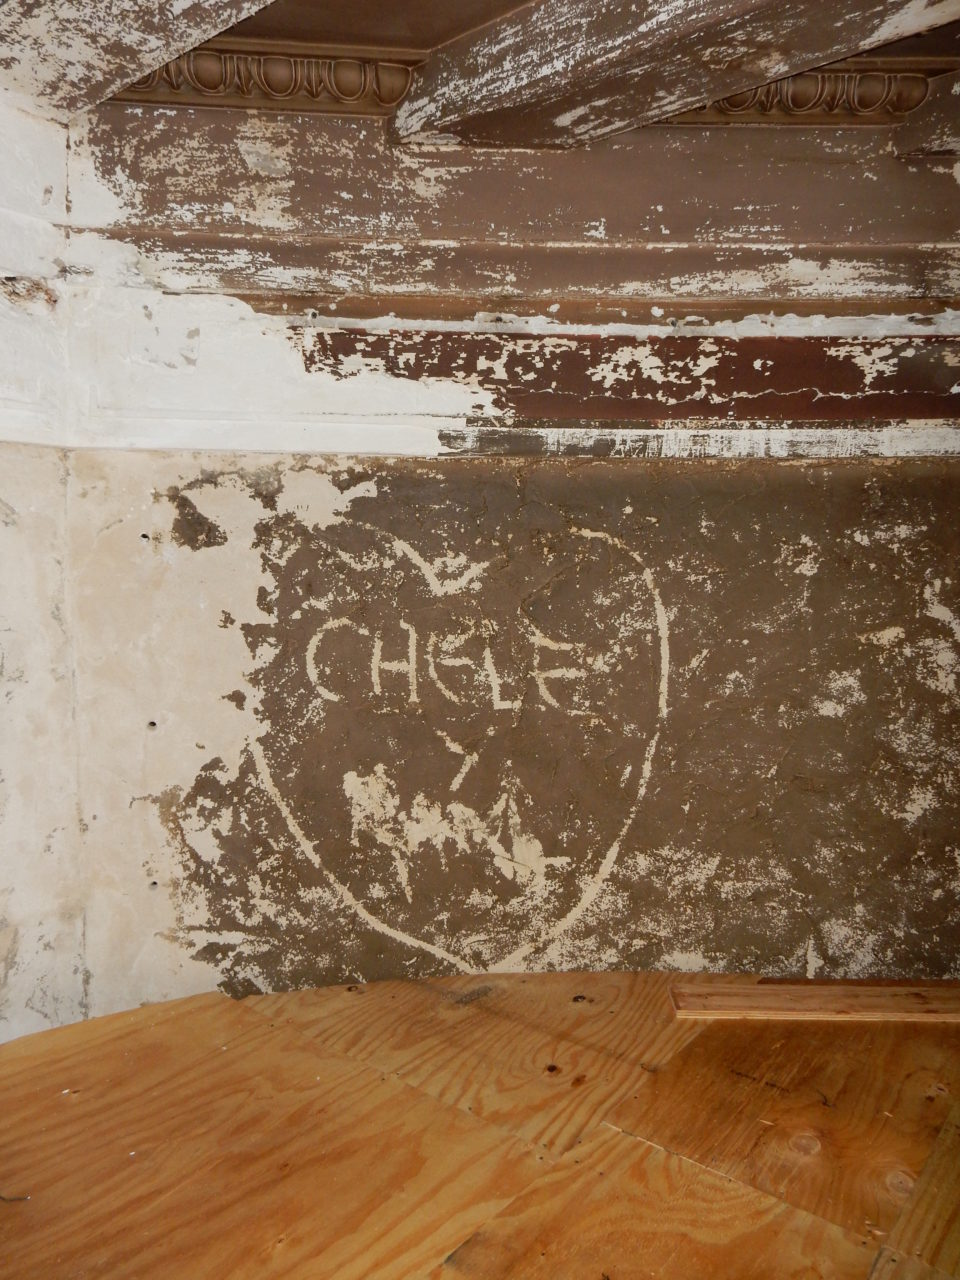 Graffiti etched into the Theatre's plaster walls